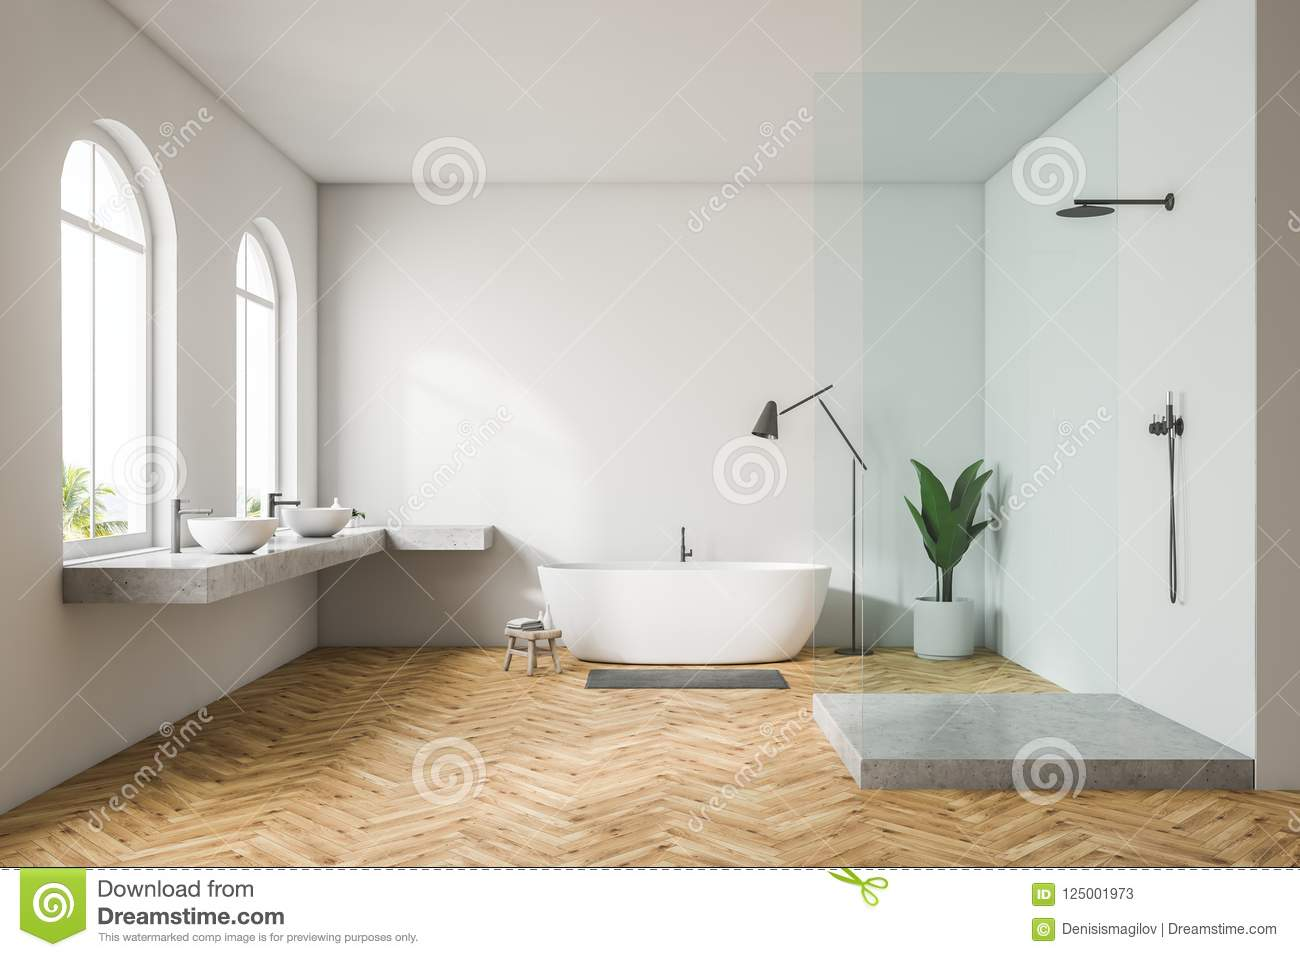 Arched Windows White Bathroom Interior Stock Illustration ...